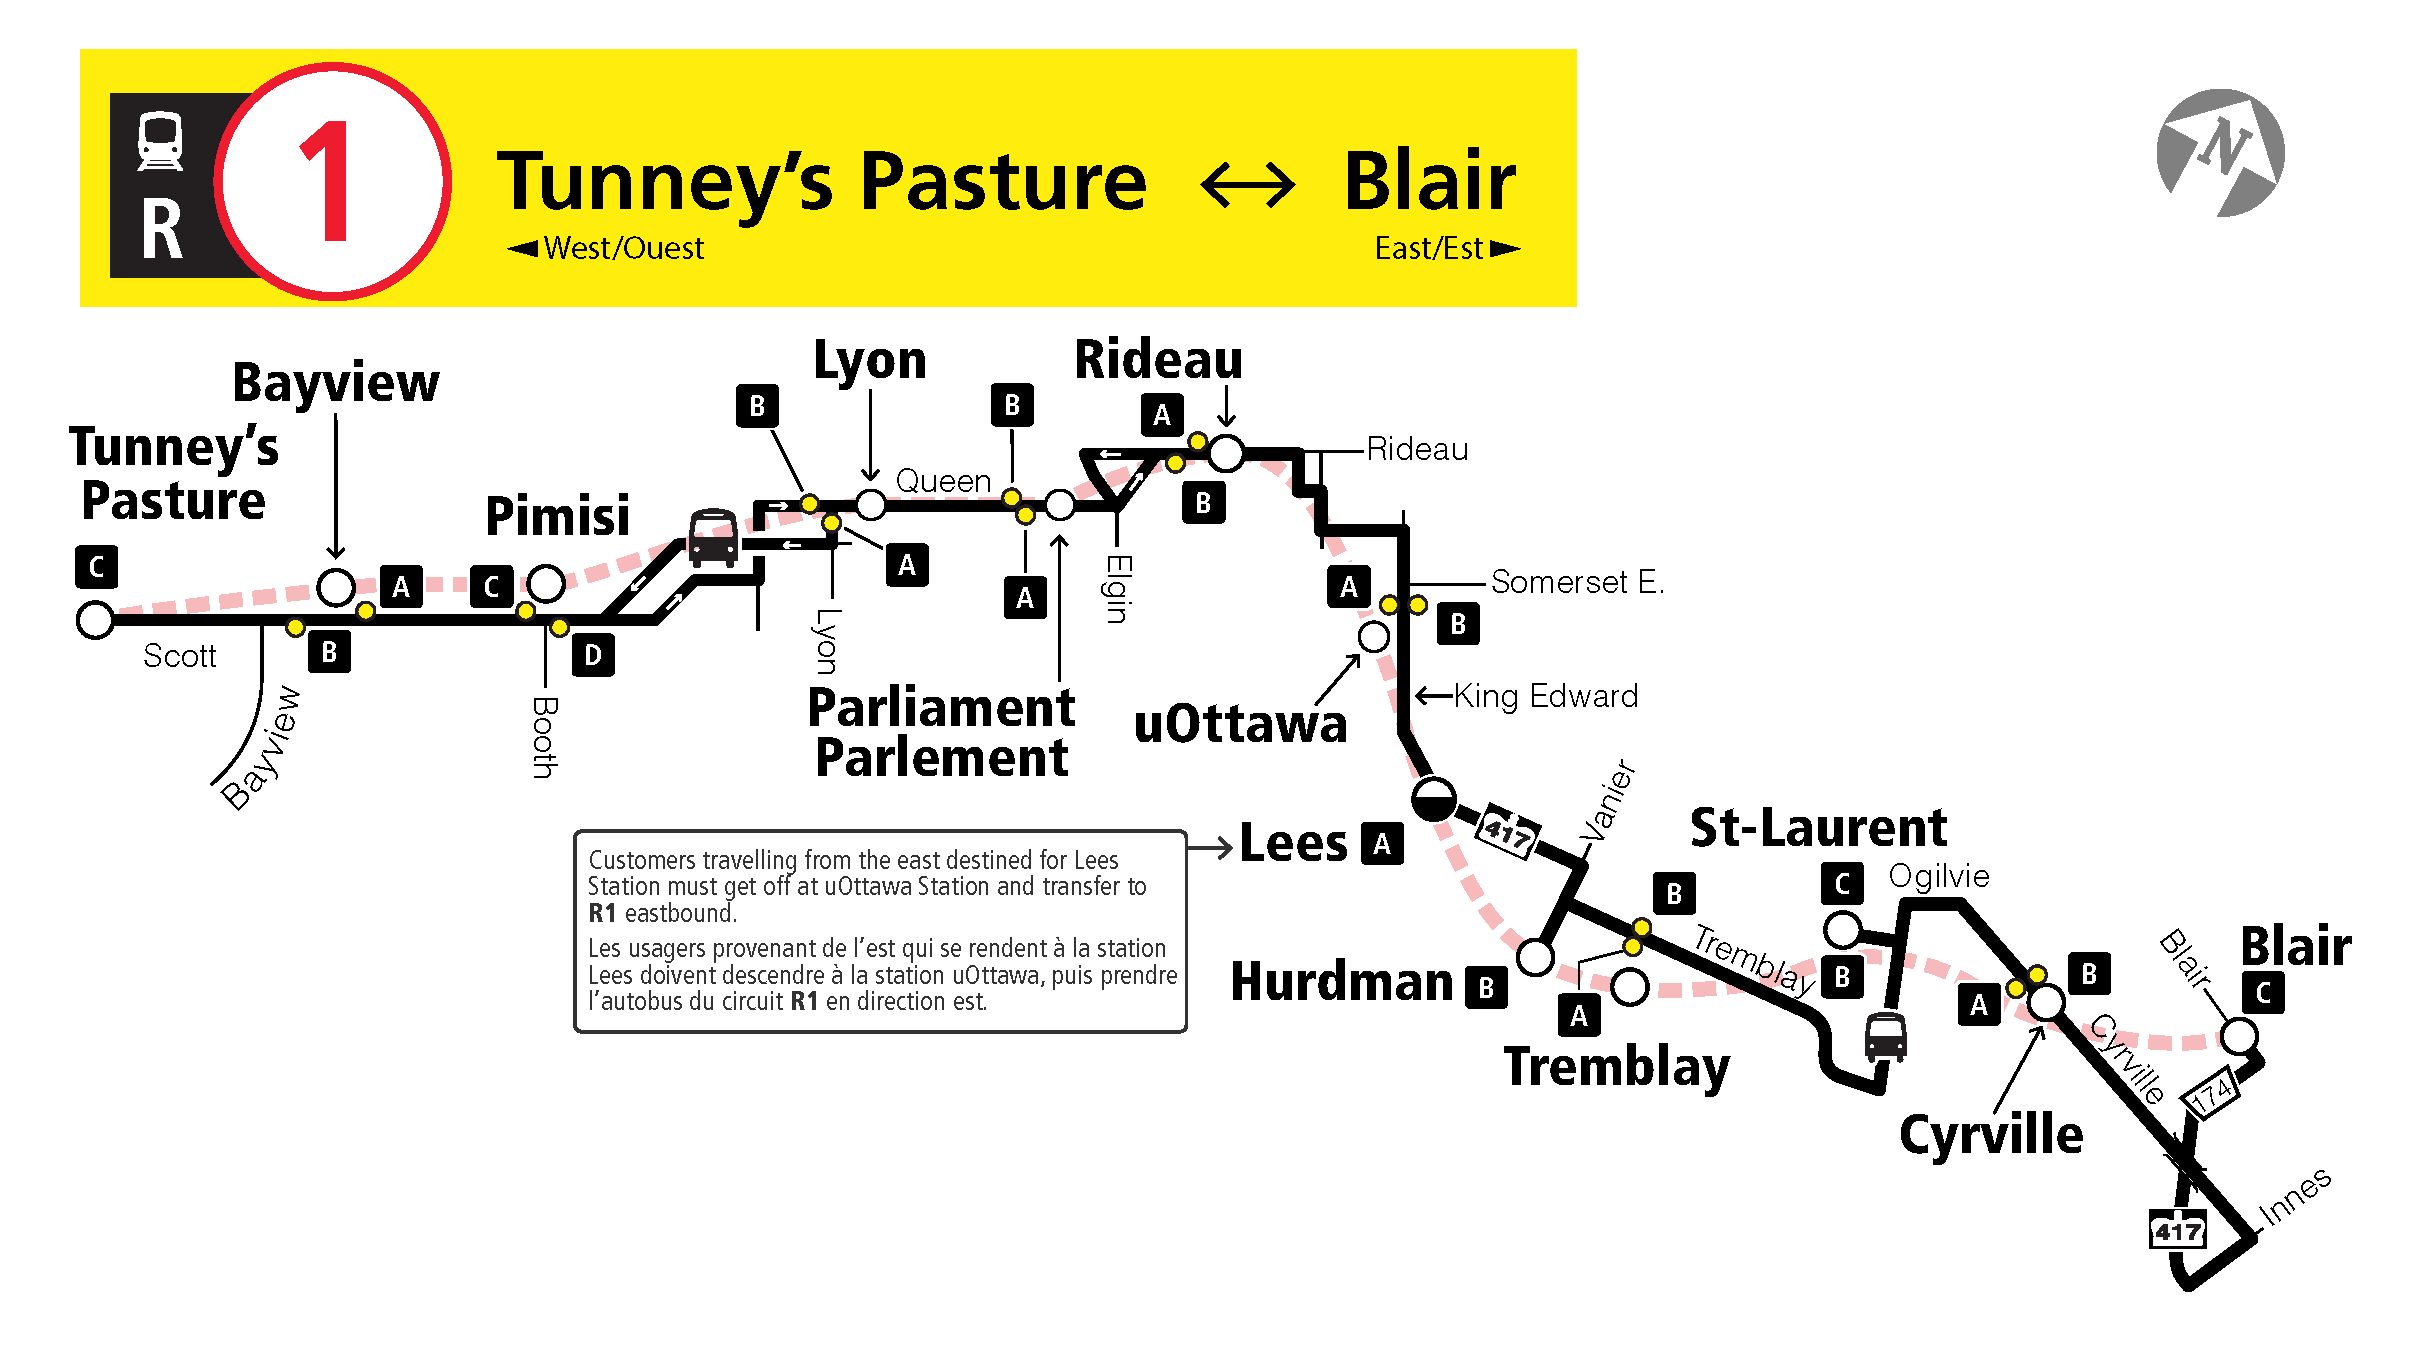 Full R1 replacement bus service map